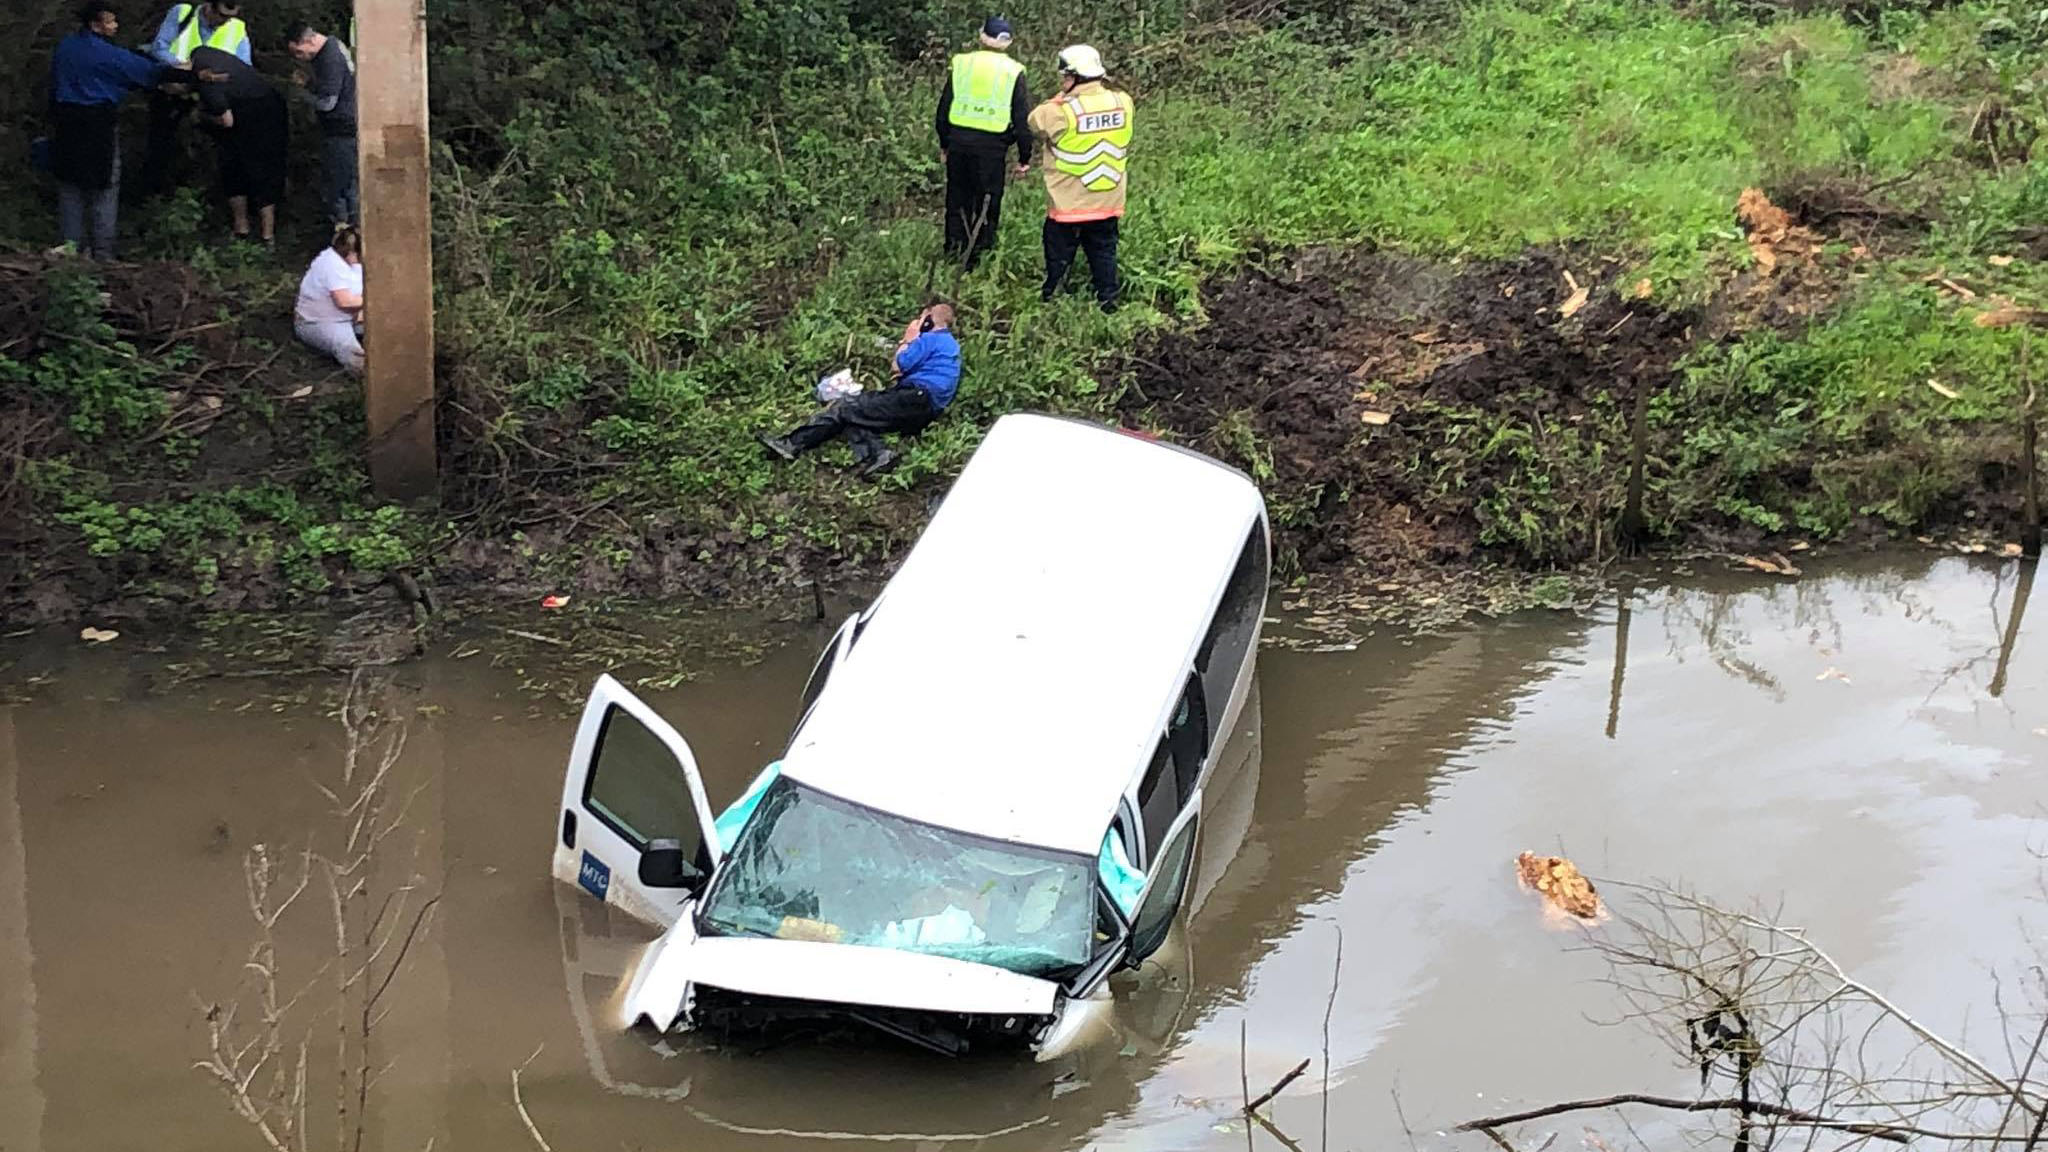 Van carrying inmates crashes into water in Wharton